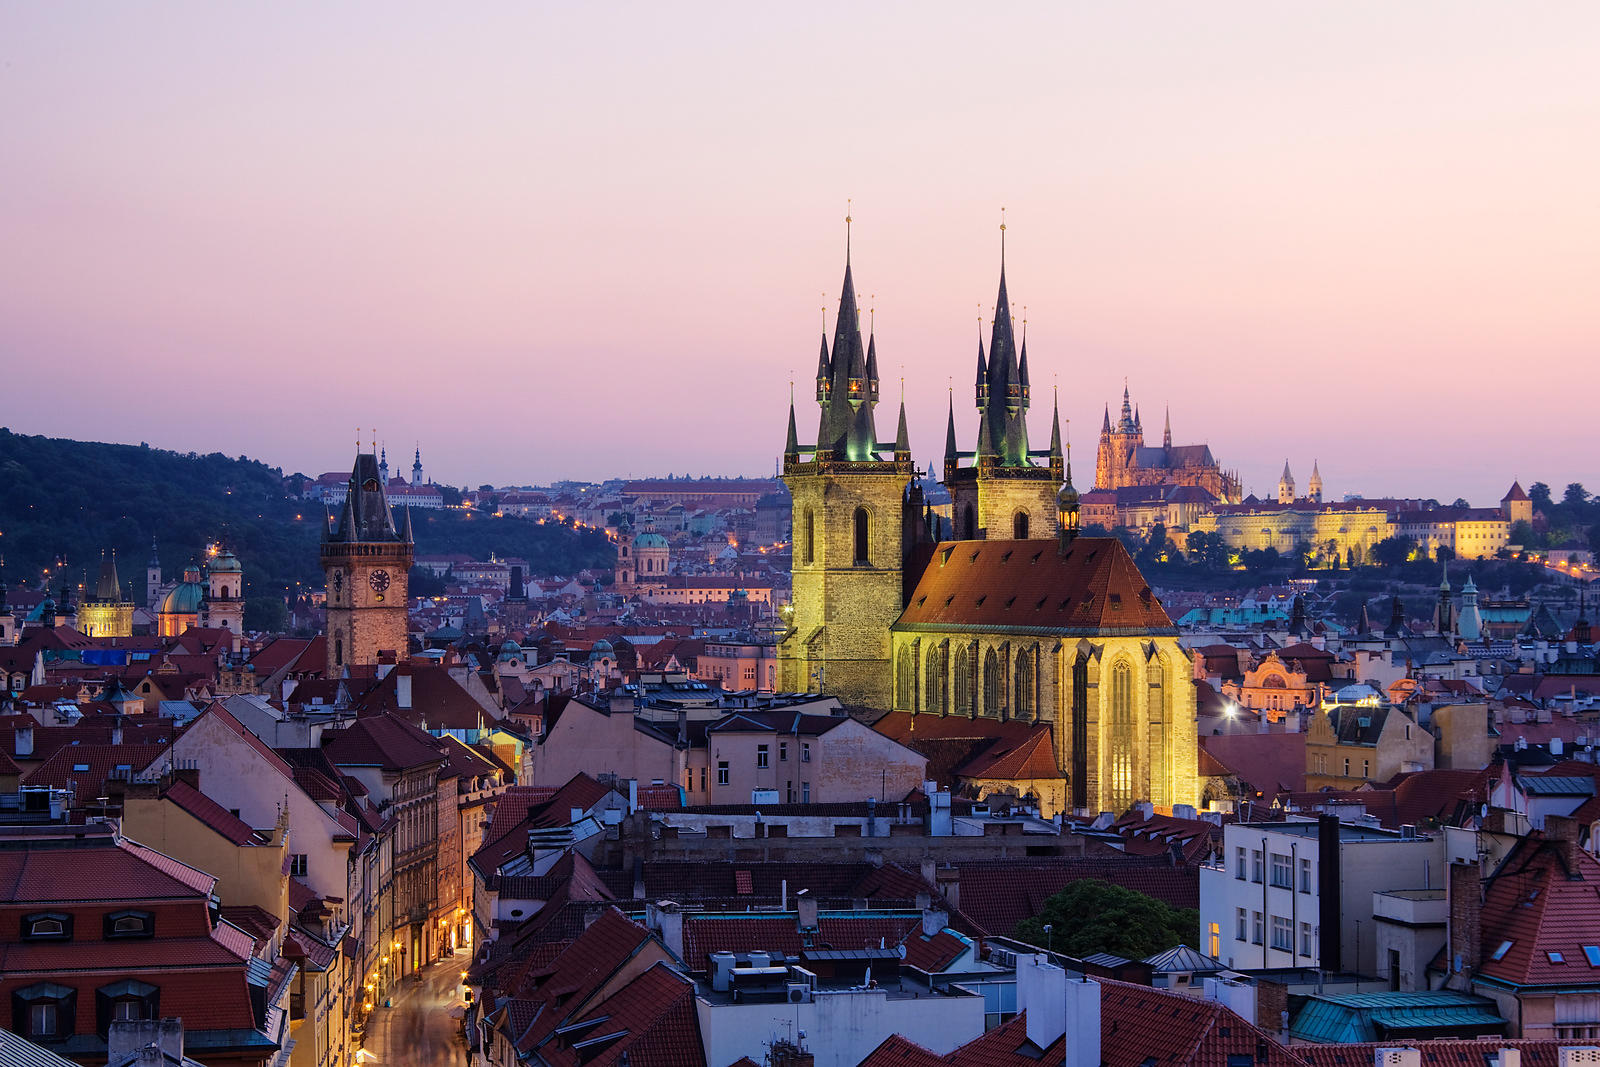 Prague Skyline at Dusk. View of the Church of Our Lady Before Tyn and Prague Castle